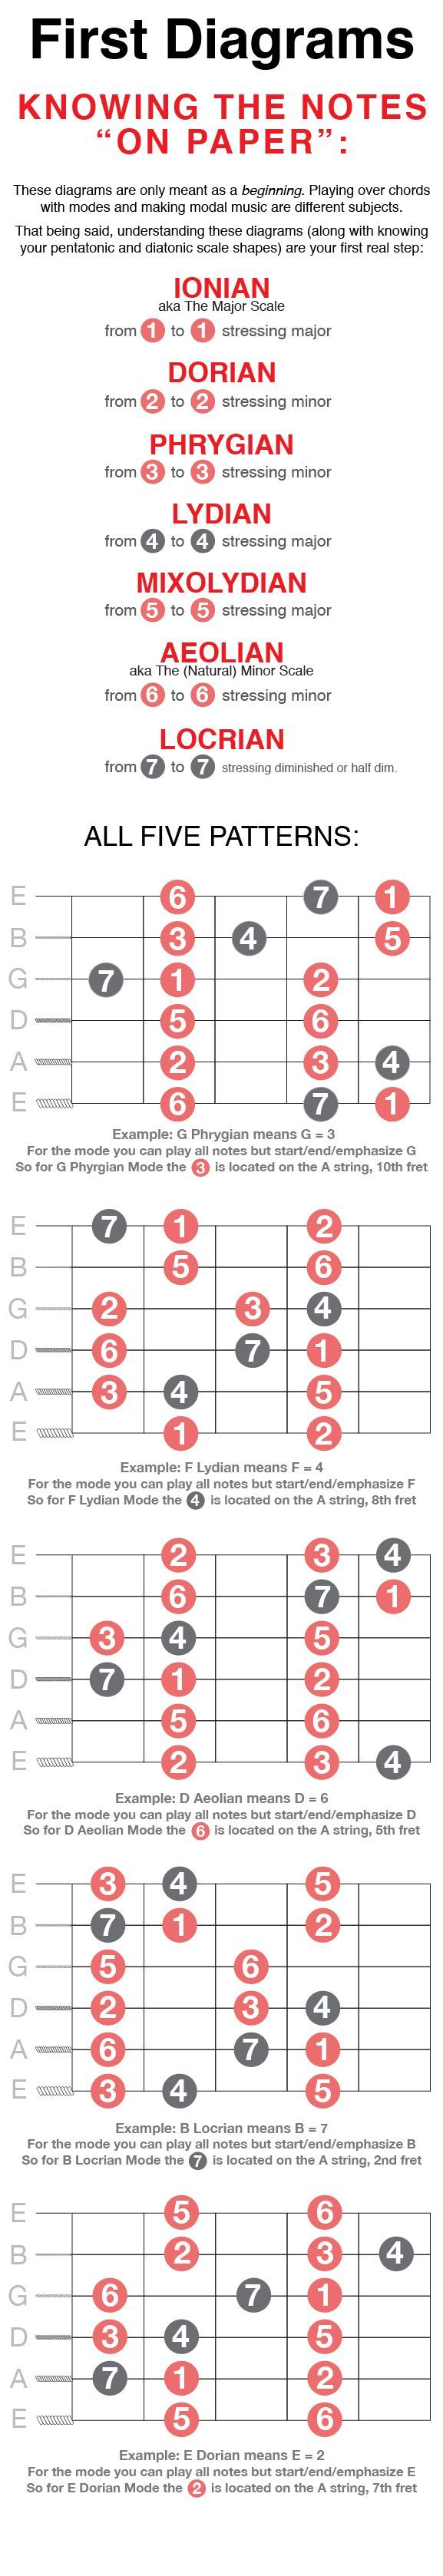 Modal Magic: Understanding & Mastering Guitar Modes for Every Level